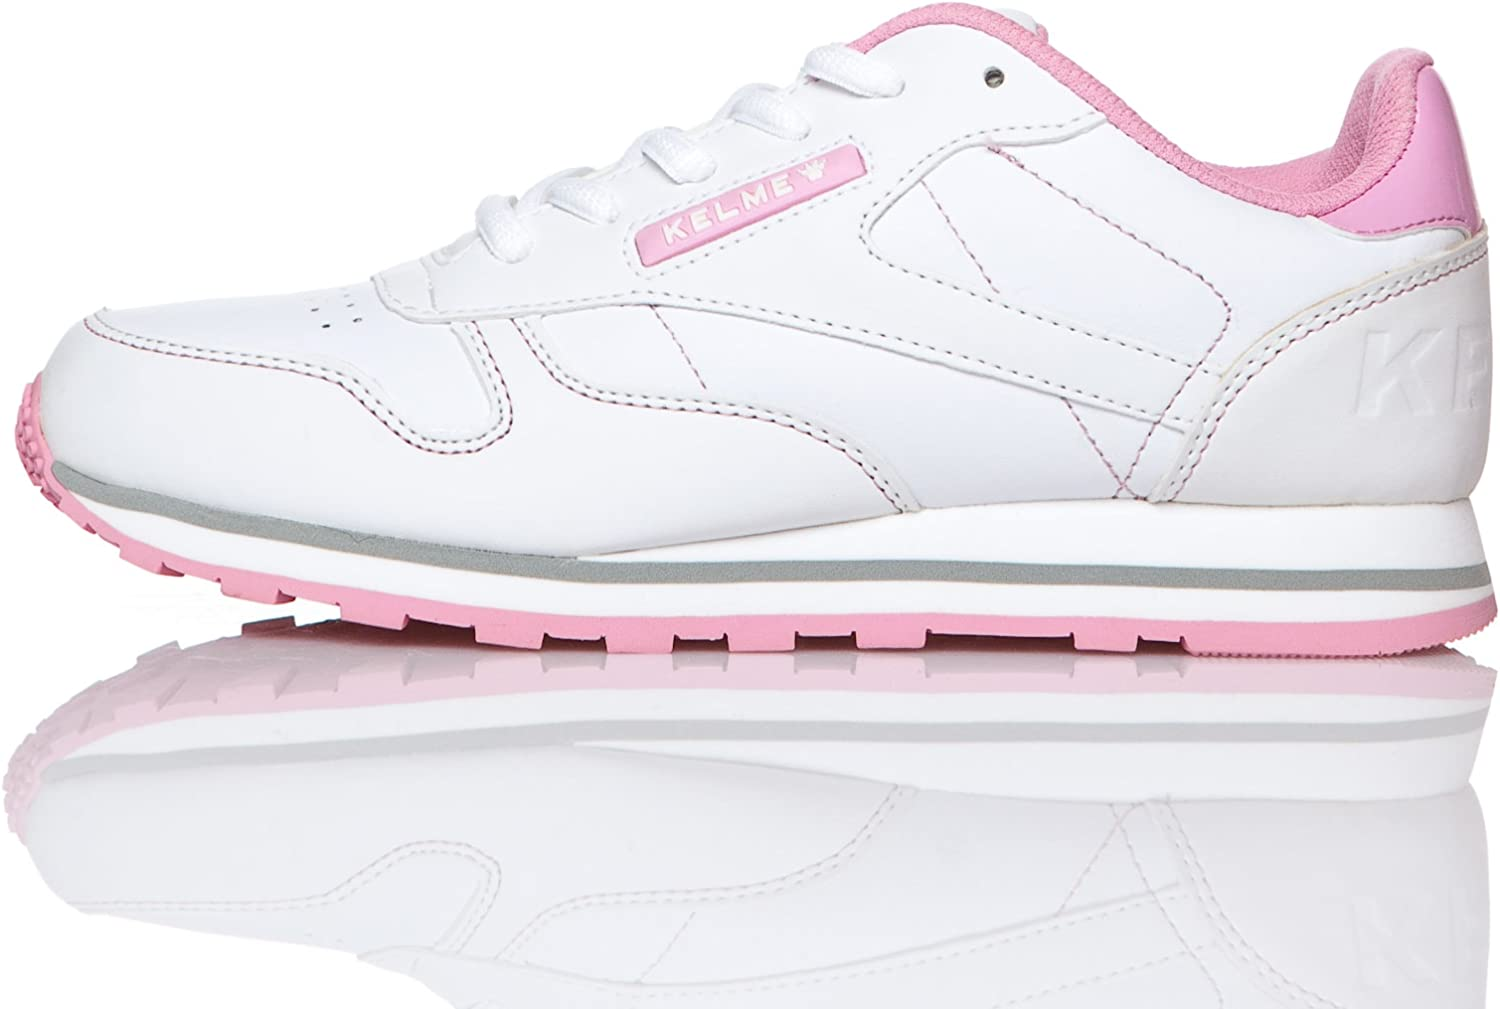 KELME Women's Sneakers Low-Top 2021 spring and Safety and trust summer new